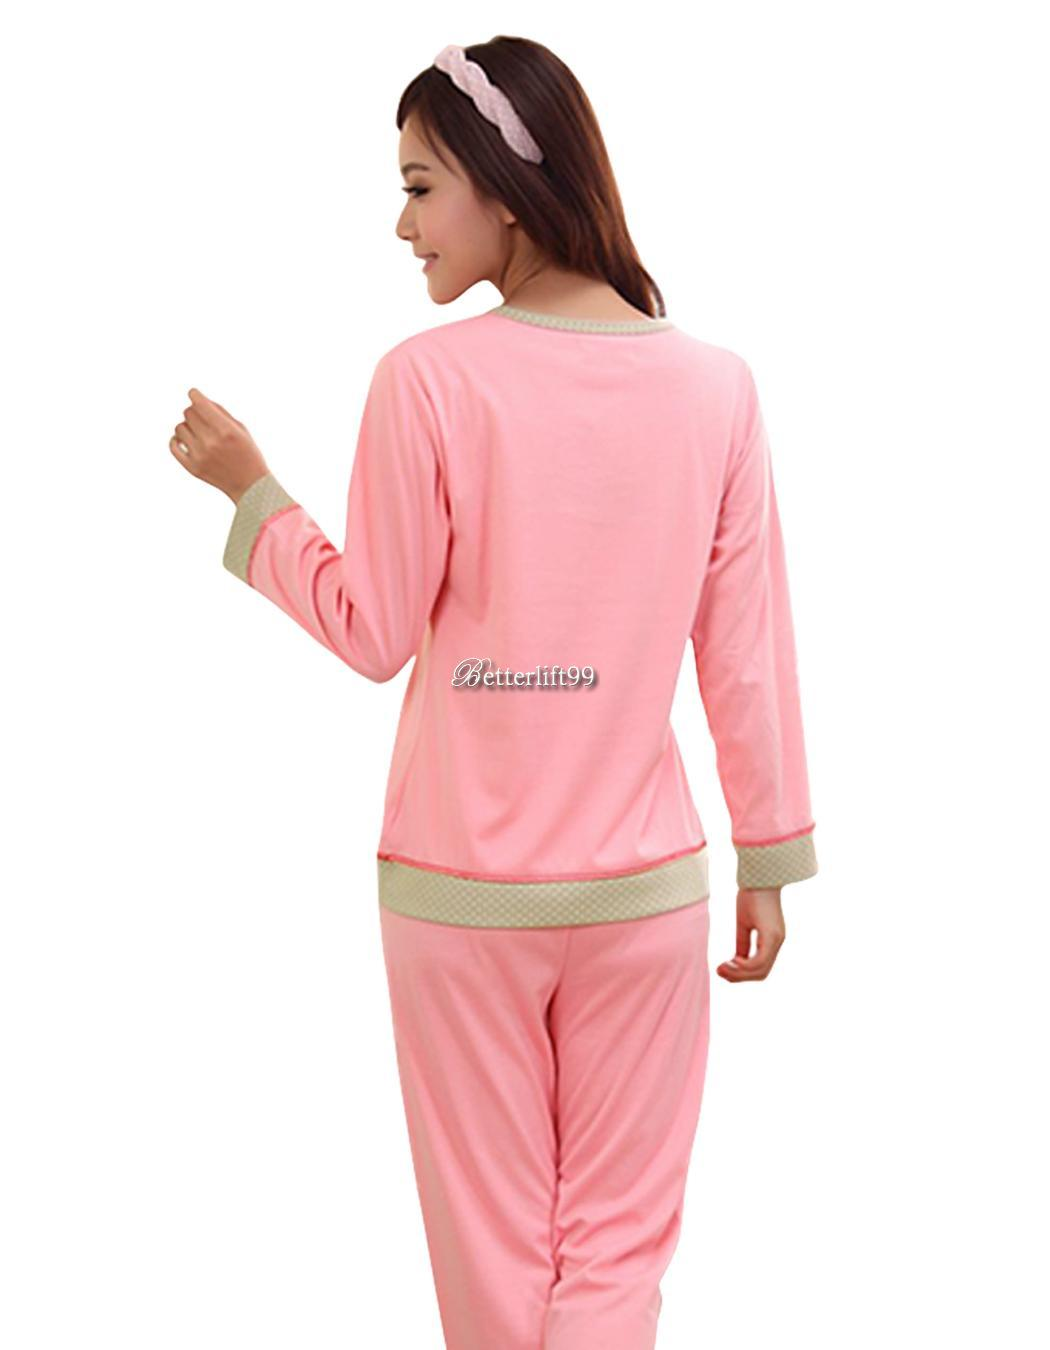 Bf9 women new crew neck long sleeve pajamas shirt pants Long cotton sleep shirts